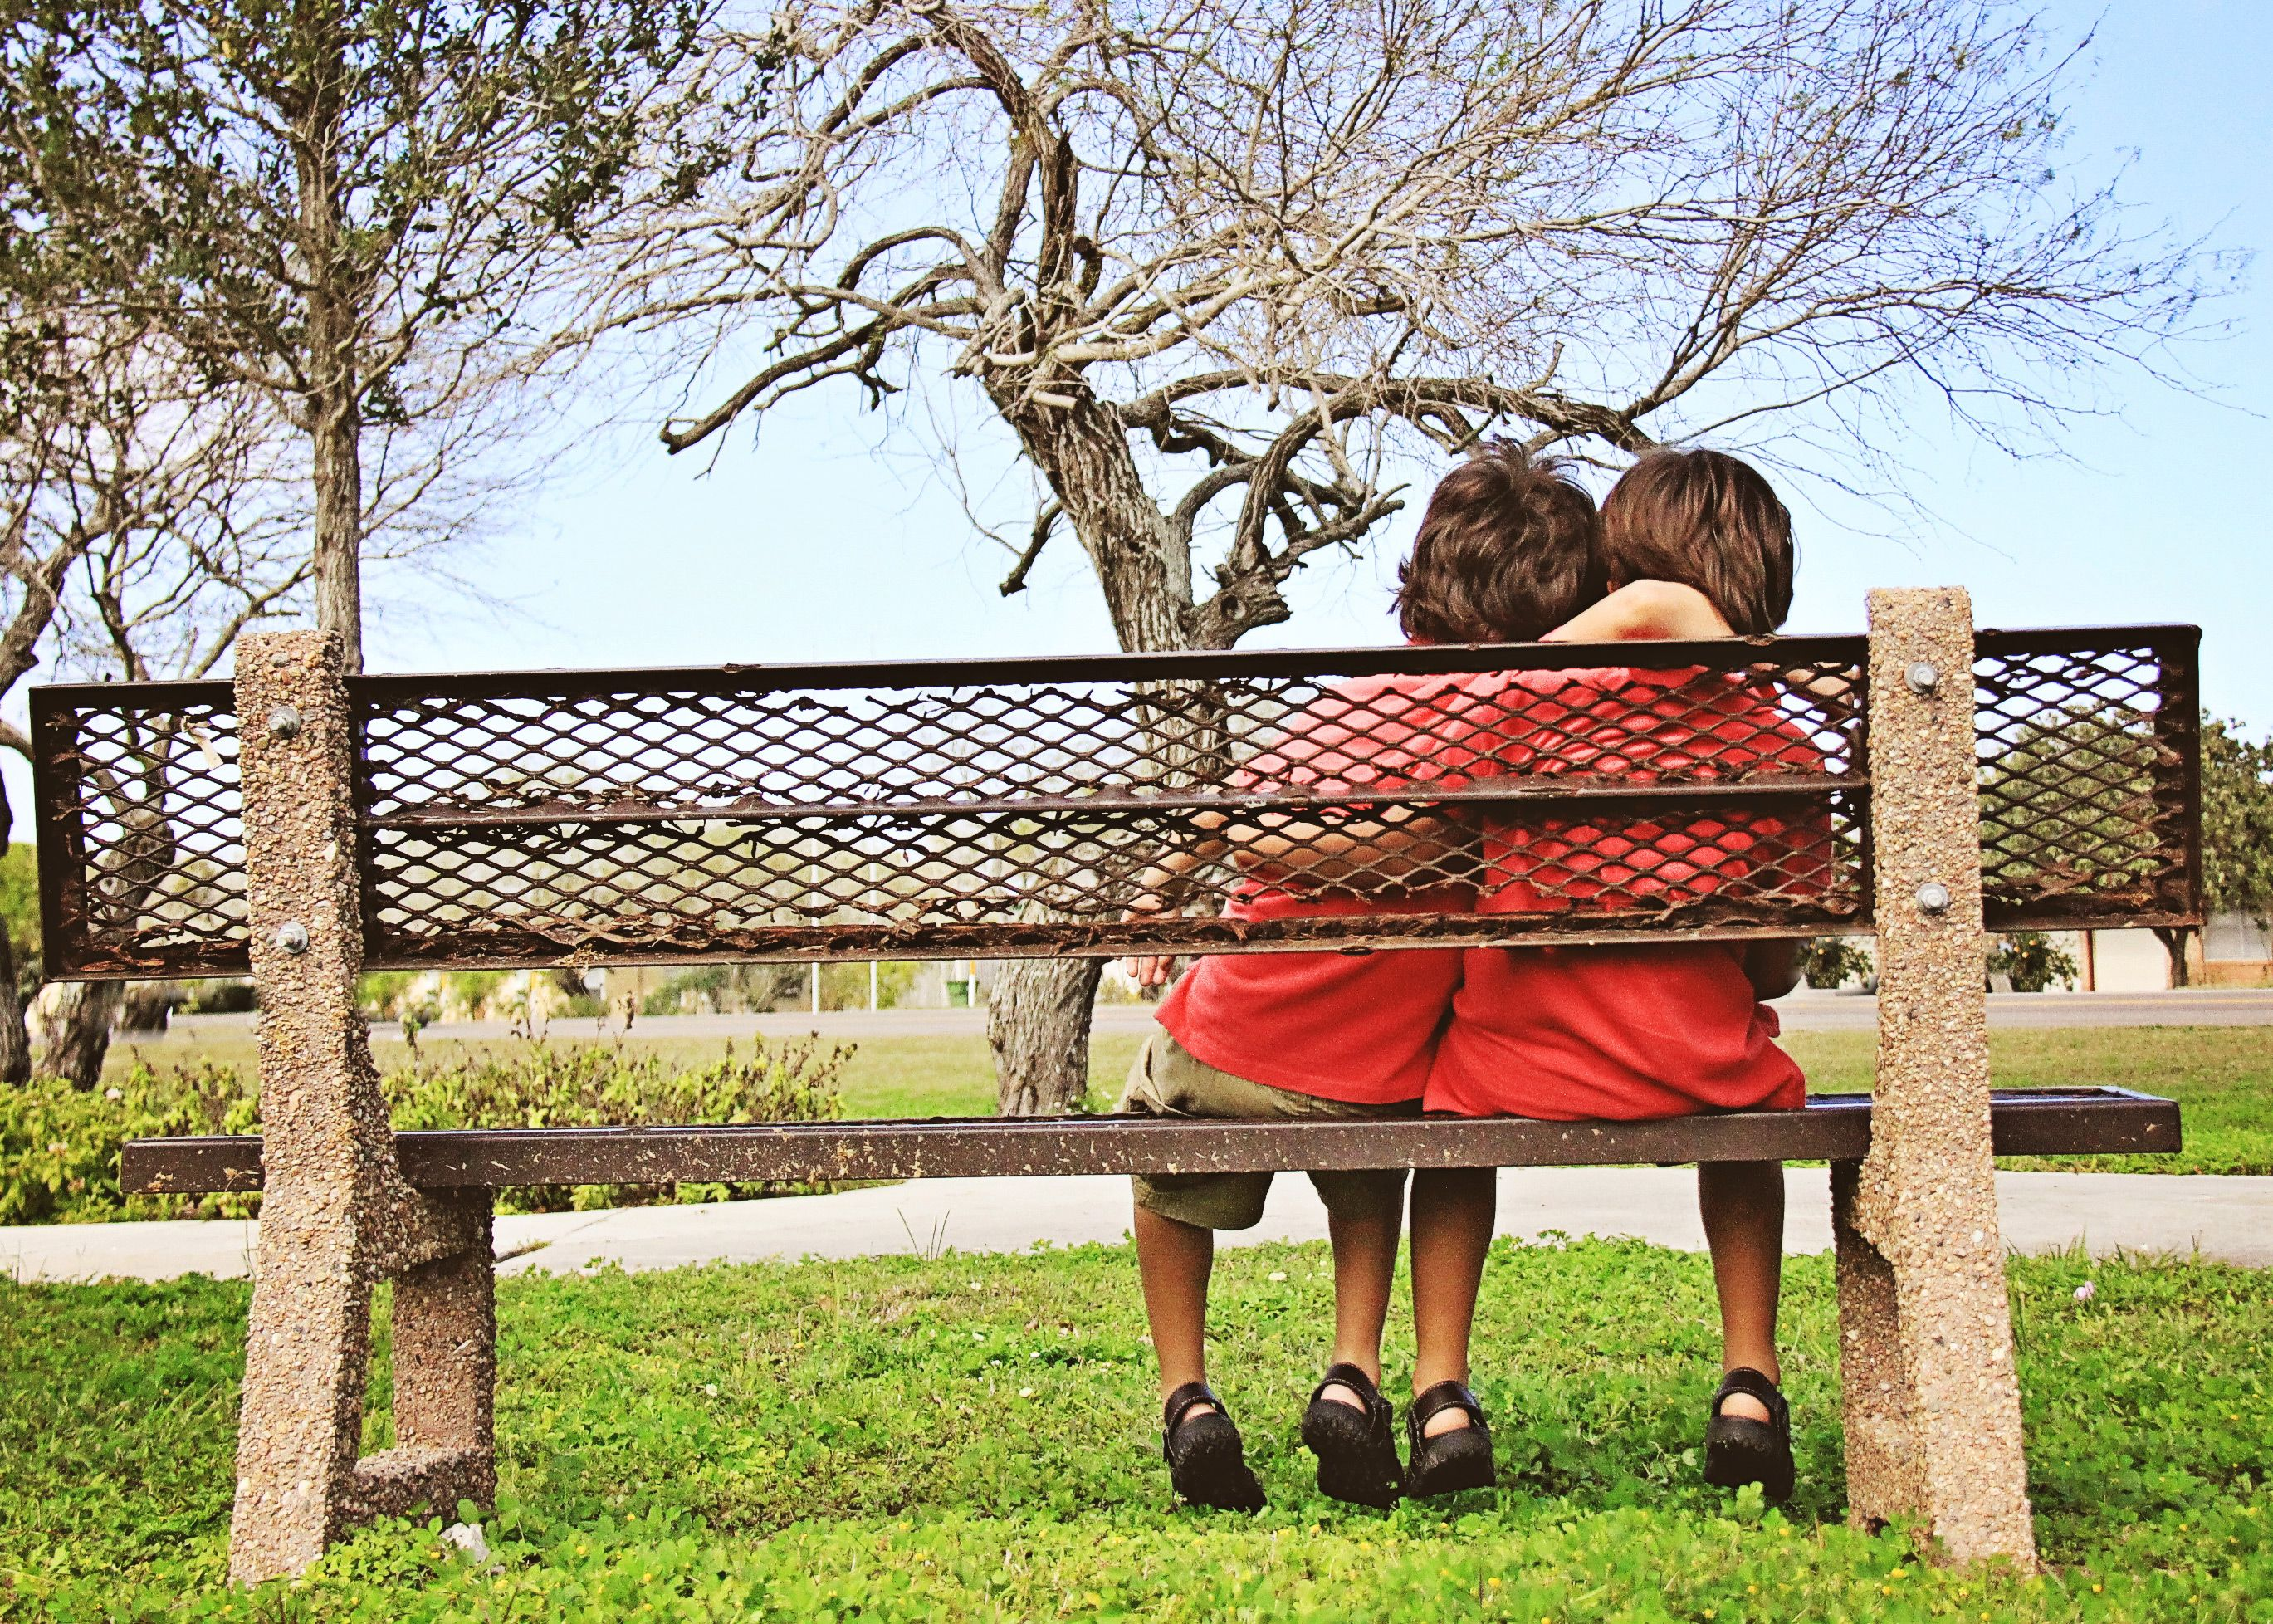 Red themed childrens photography | Iliasis Muniz Photography Red themed outfit ideas, sibling photo shoot, outdoor photography, natural light photography, posing ideas for childrens photo shoot, outfit ideas for chldrens photography, park bench prop.